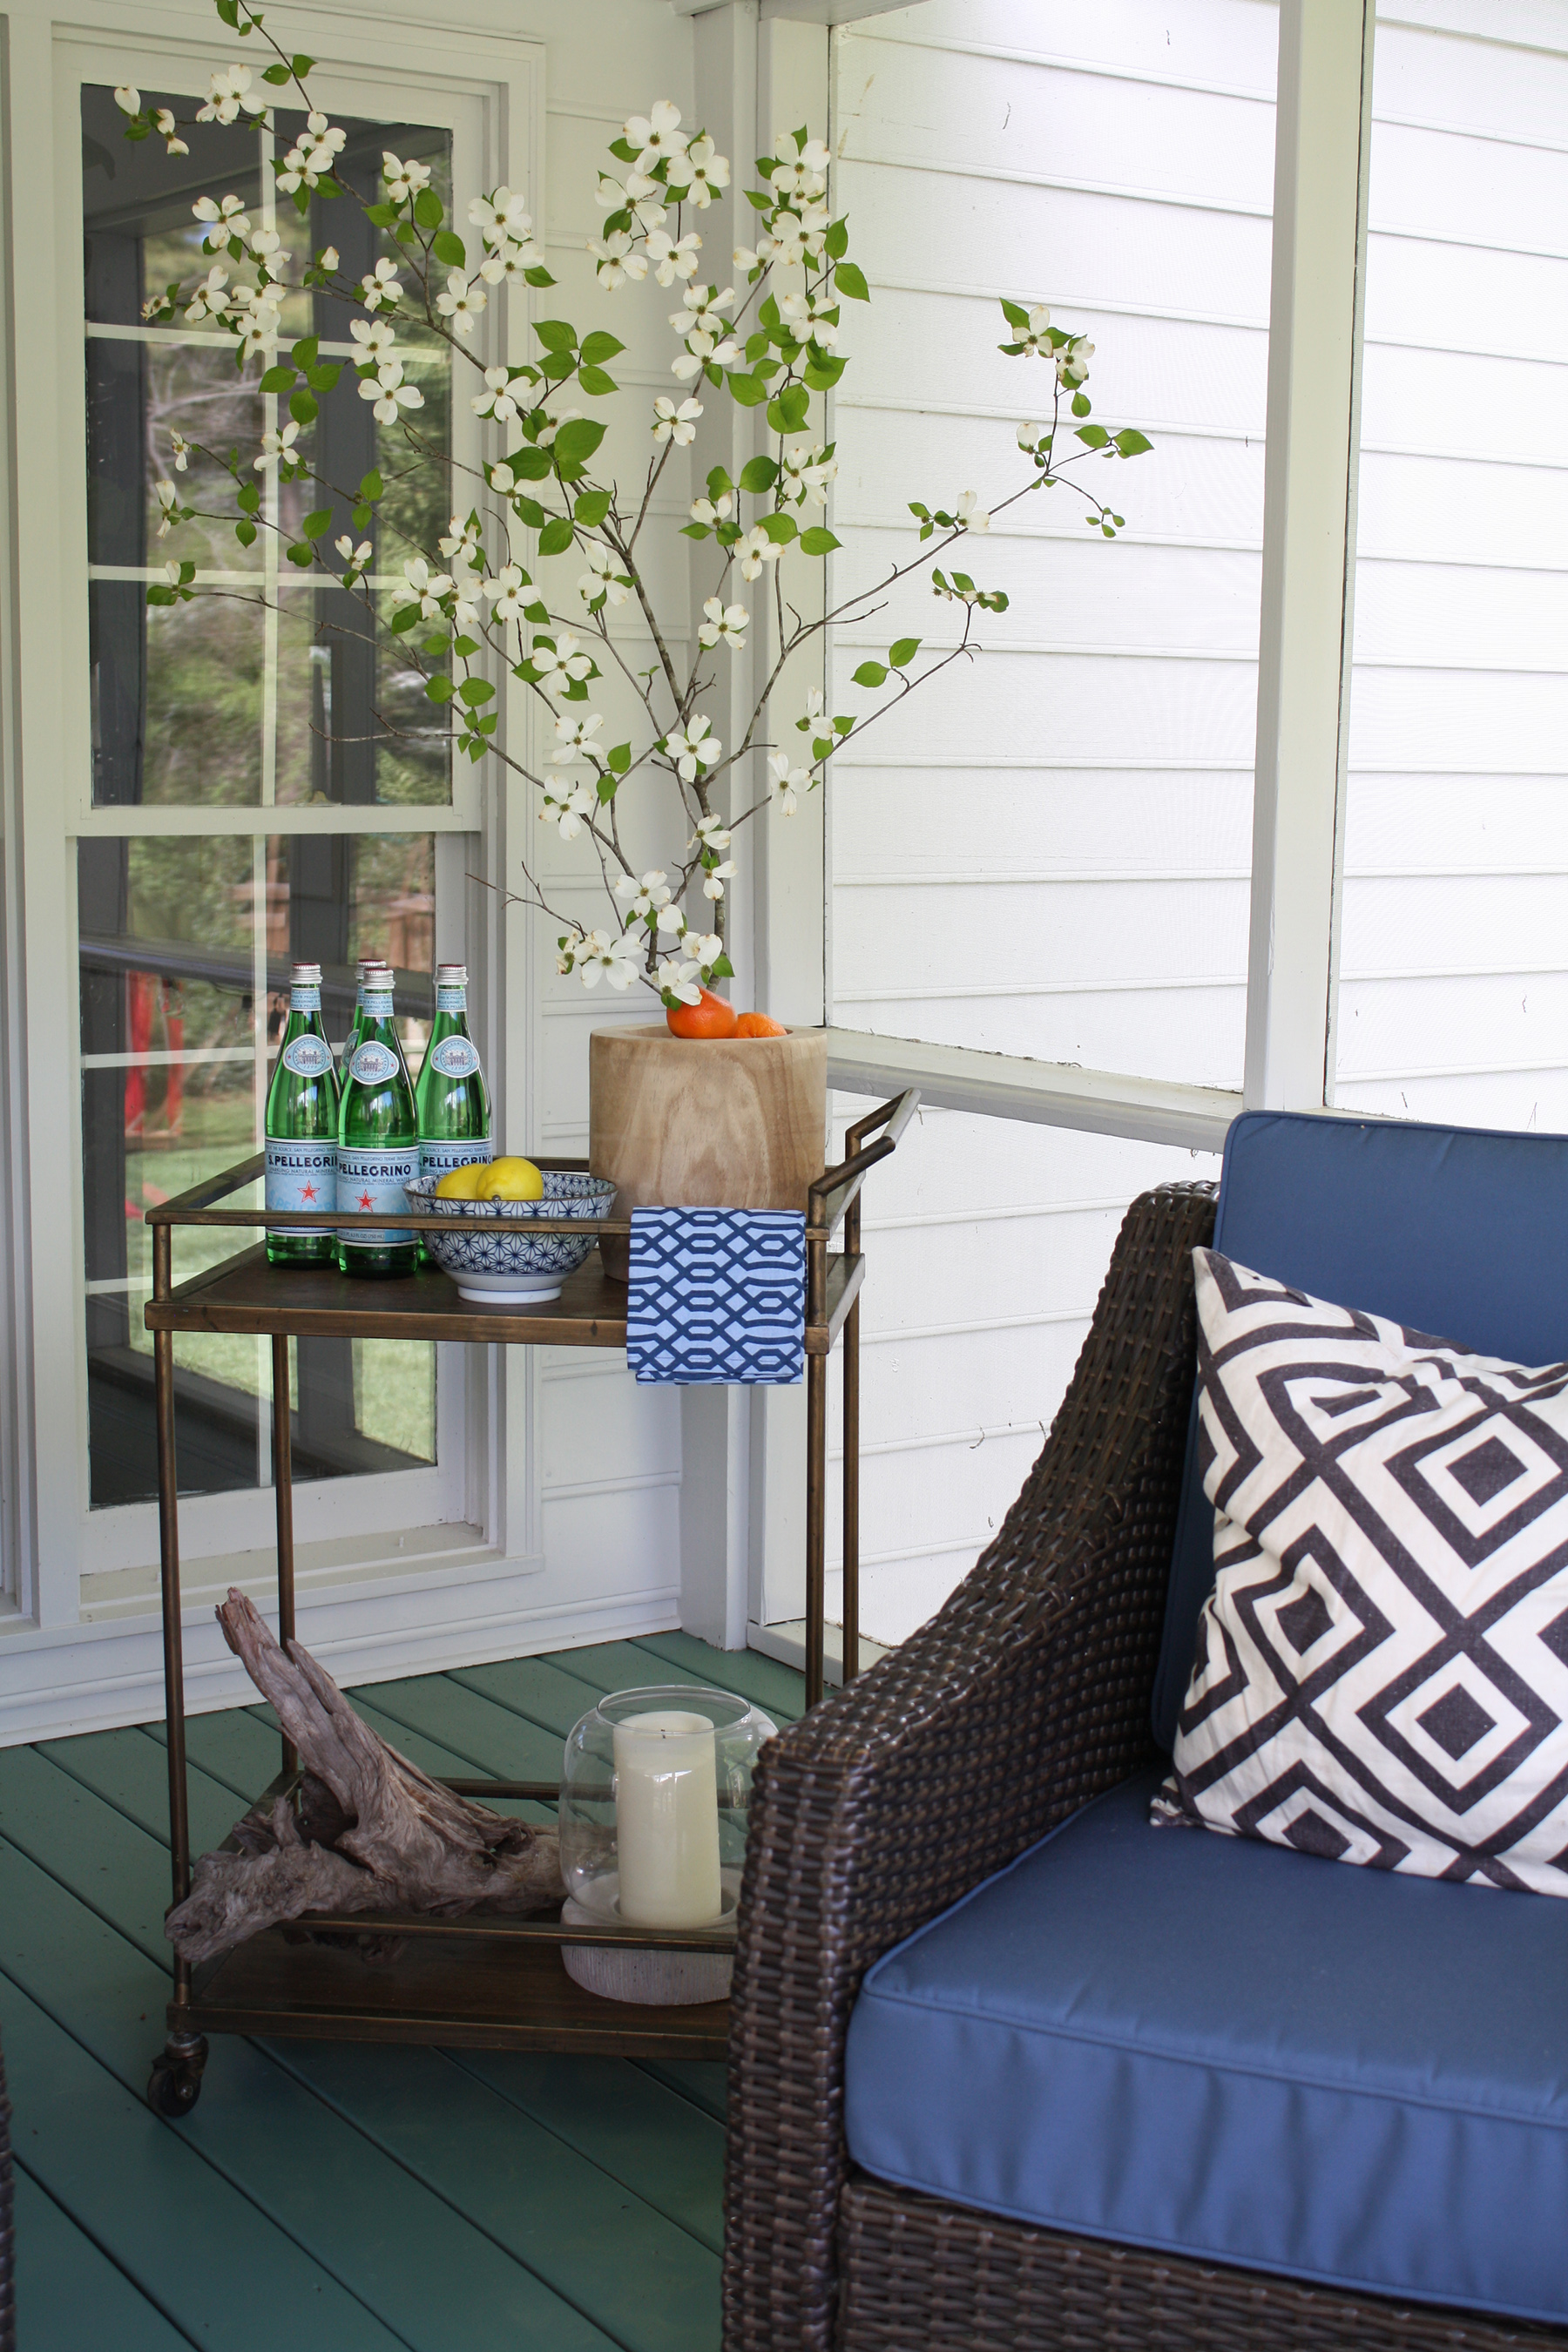 Emily Clark from the blog Emily A. Clark wins $5,000 for the St. Jude Children's Research Hospital through FrogTape® Paintover Challenge® room makeover contest with her screened-in porch transformation.